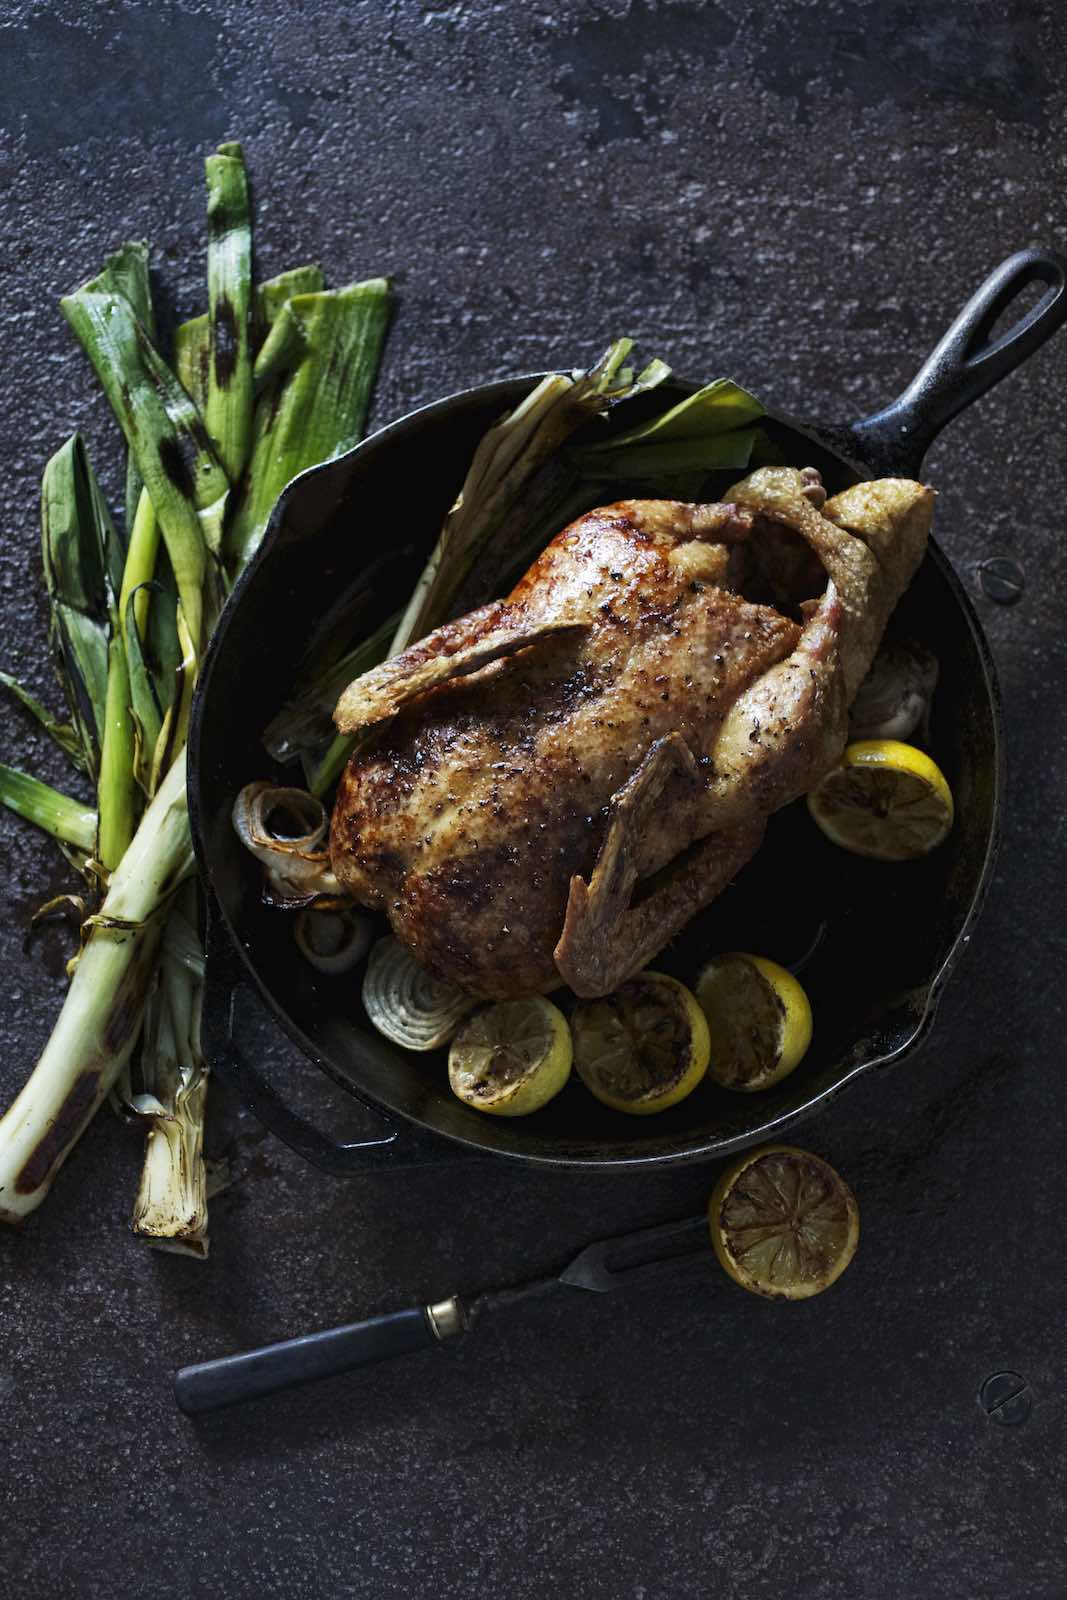 Jody Horton Photography - Roasted chicken with lemon and leaks in cast iron skillet.